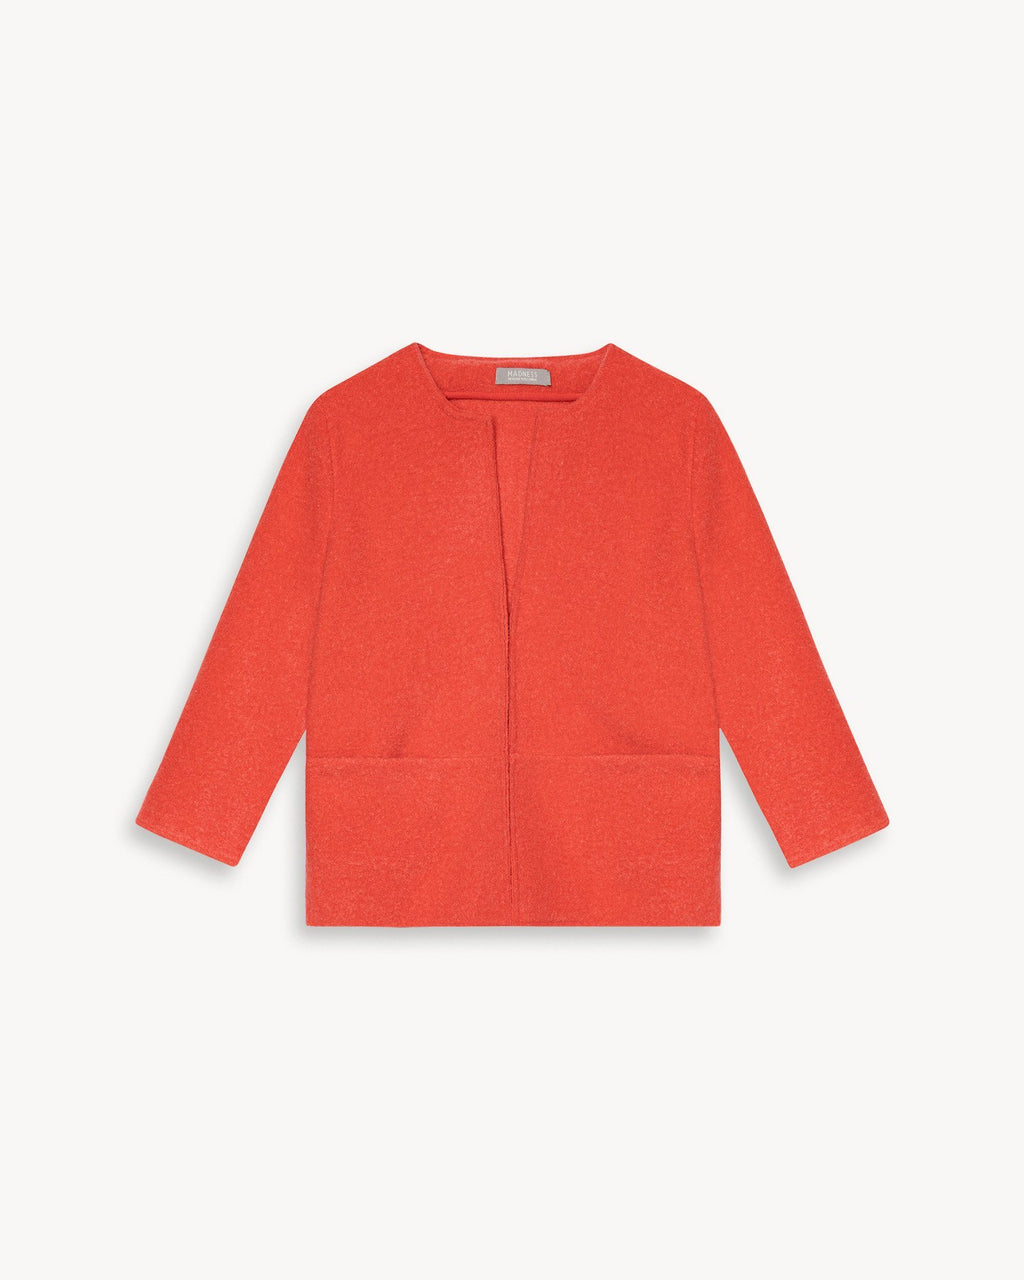 variant_1 | EN Women Cardigan Jacket 3/4 Arm Elegant Red Orange | DE Damen Cardigan Jacke Elegant 3/4 Arm Rot Orange